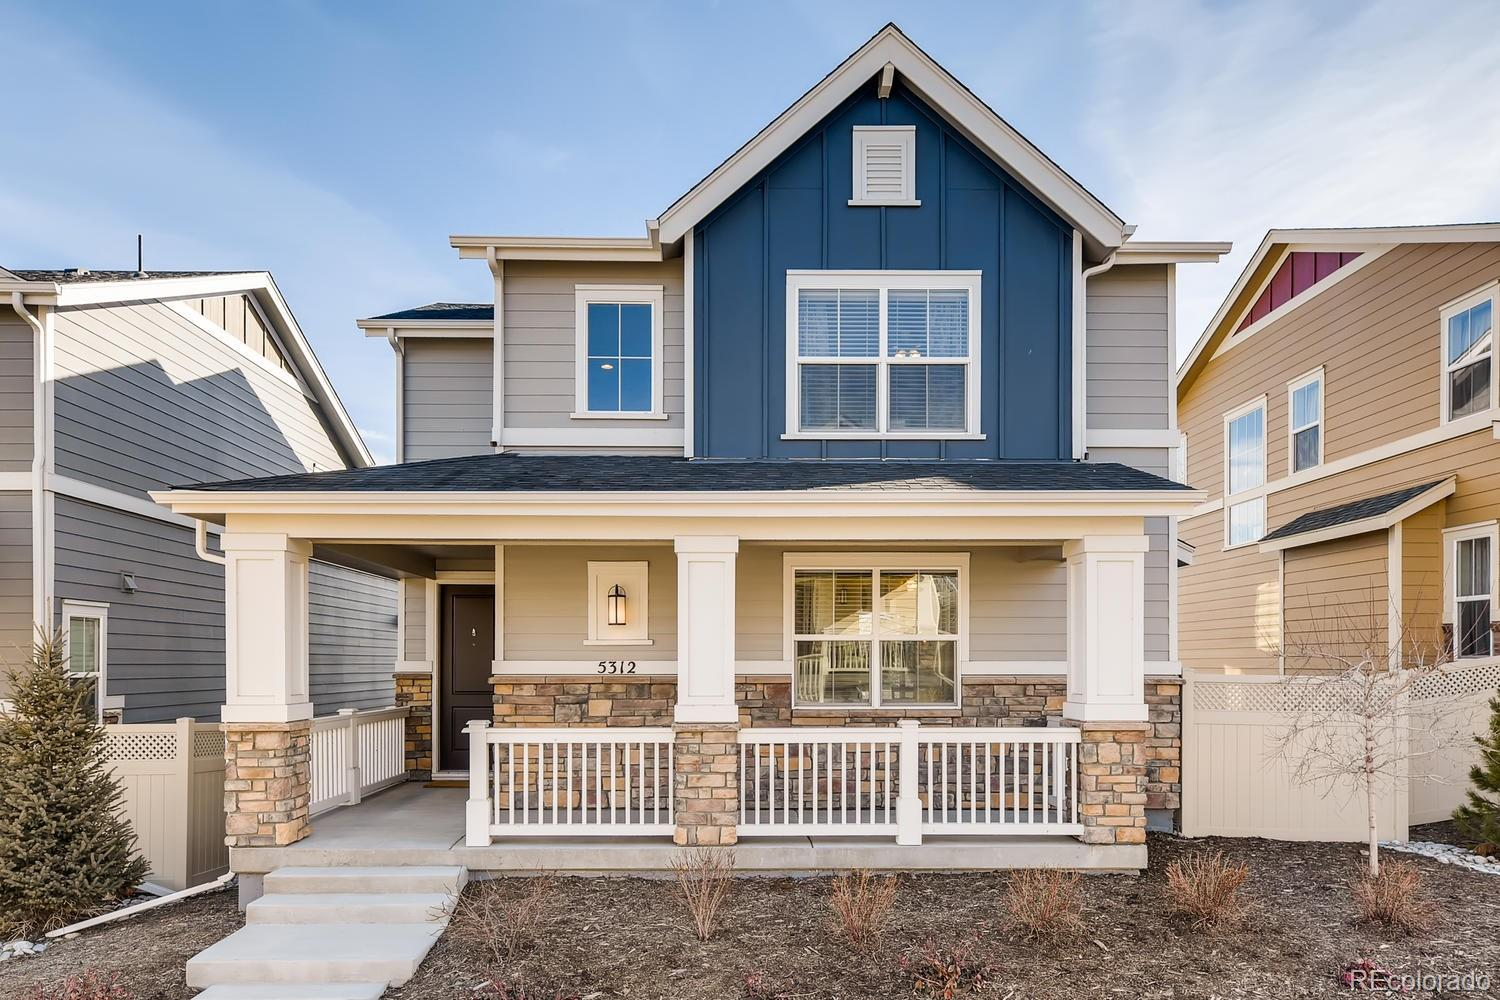 MLS# 1631314 - 2 - 5312 W 73rd Place, Westminster, CO 80003